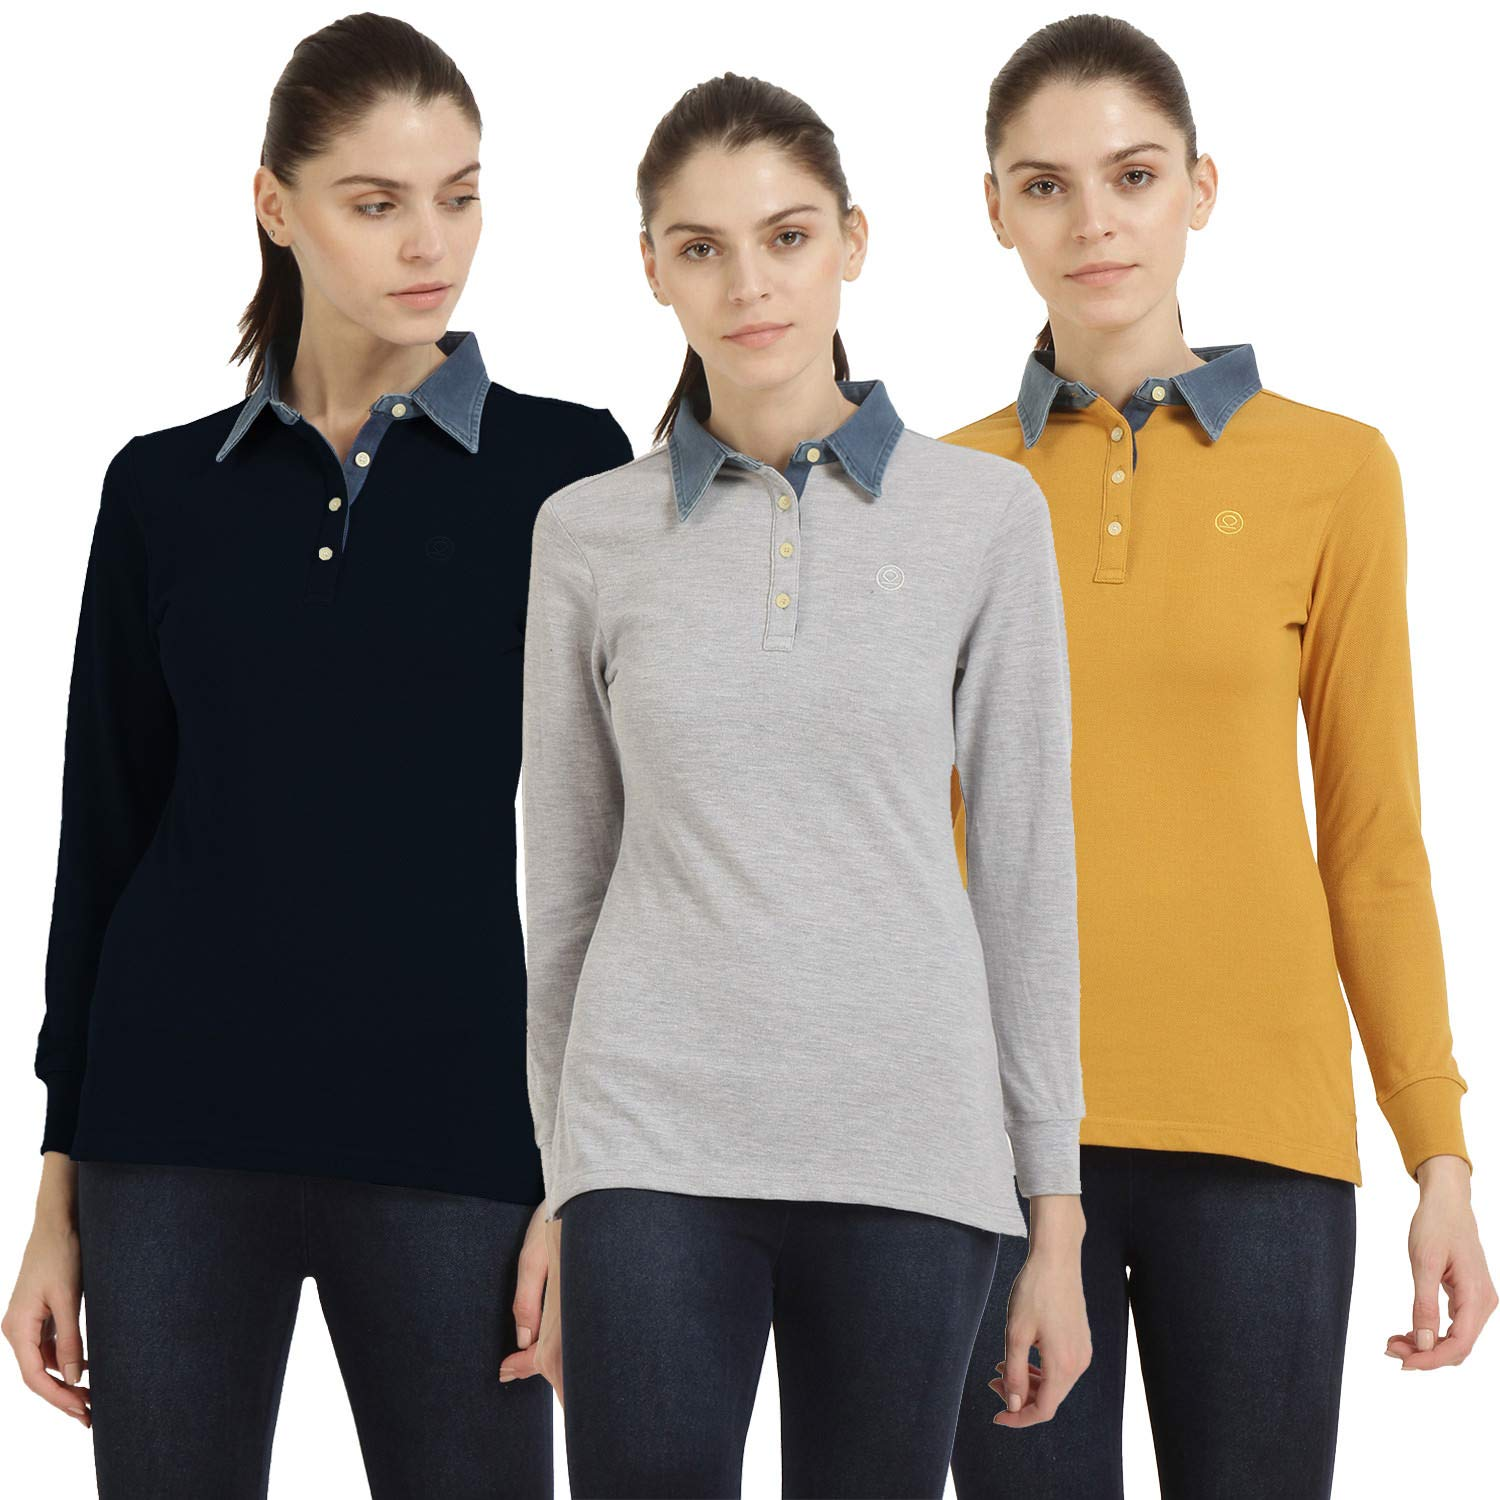 974df59780b CHKOKKO Plain Cotton Polo Neck Full Sleeves T Shirt for Women (Medium